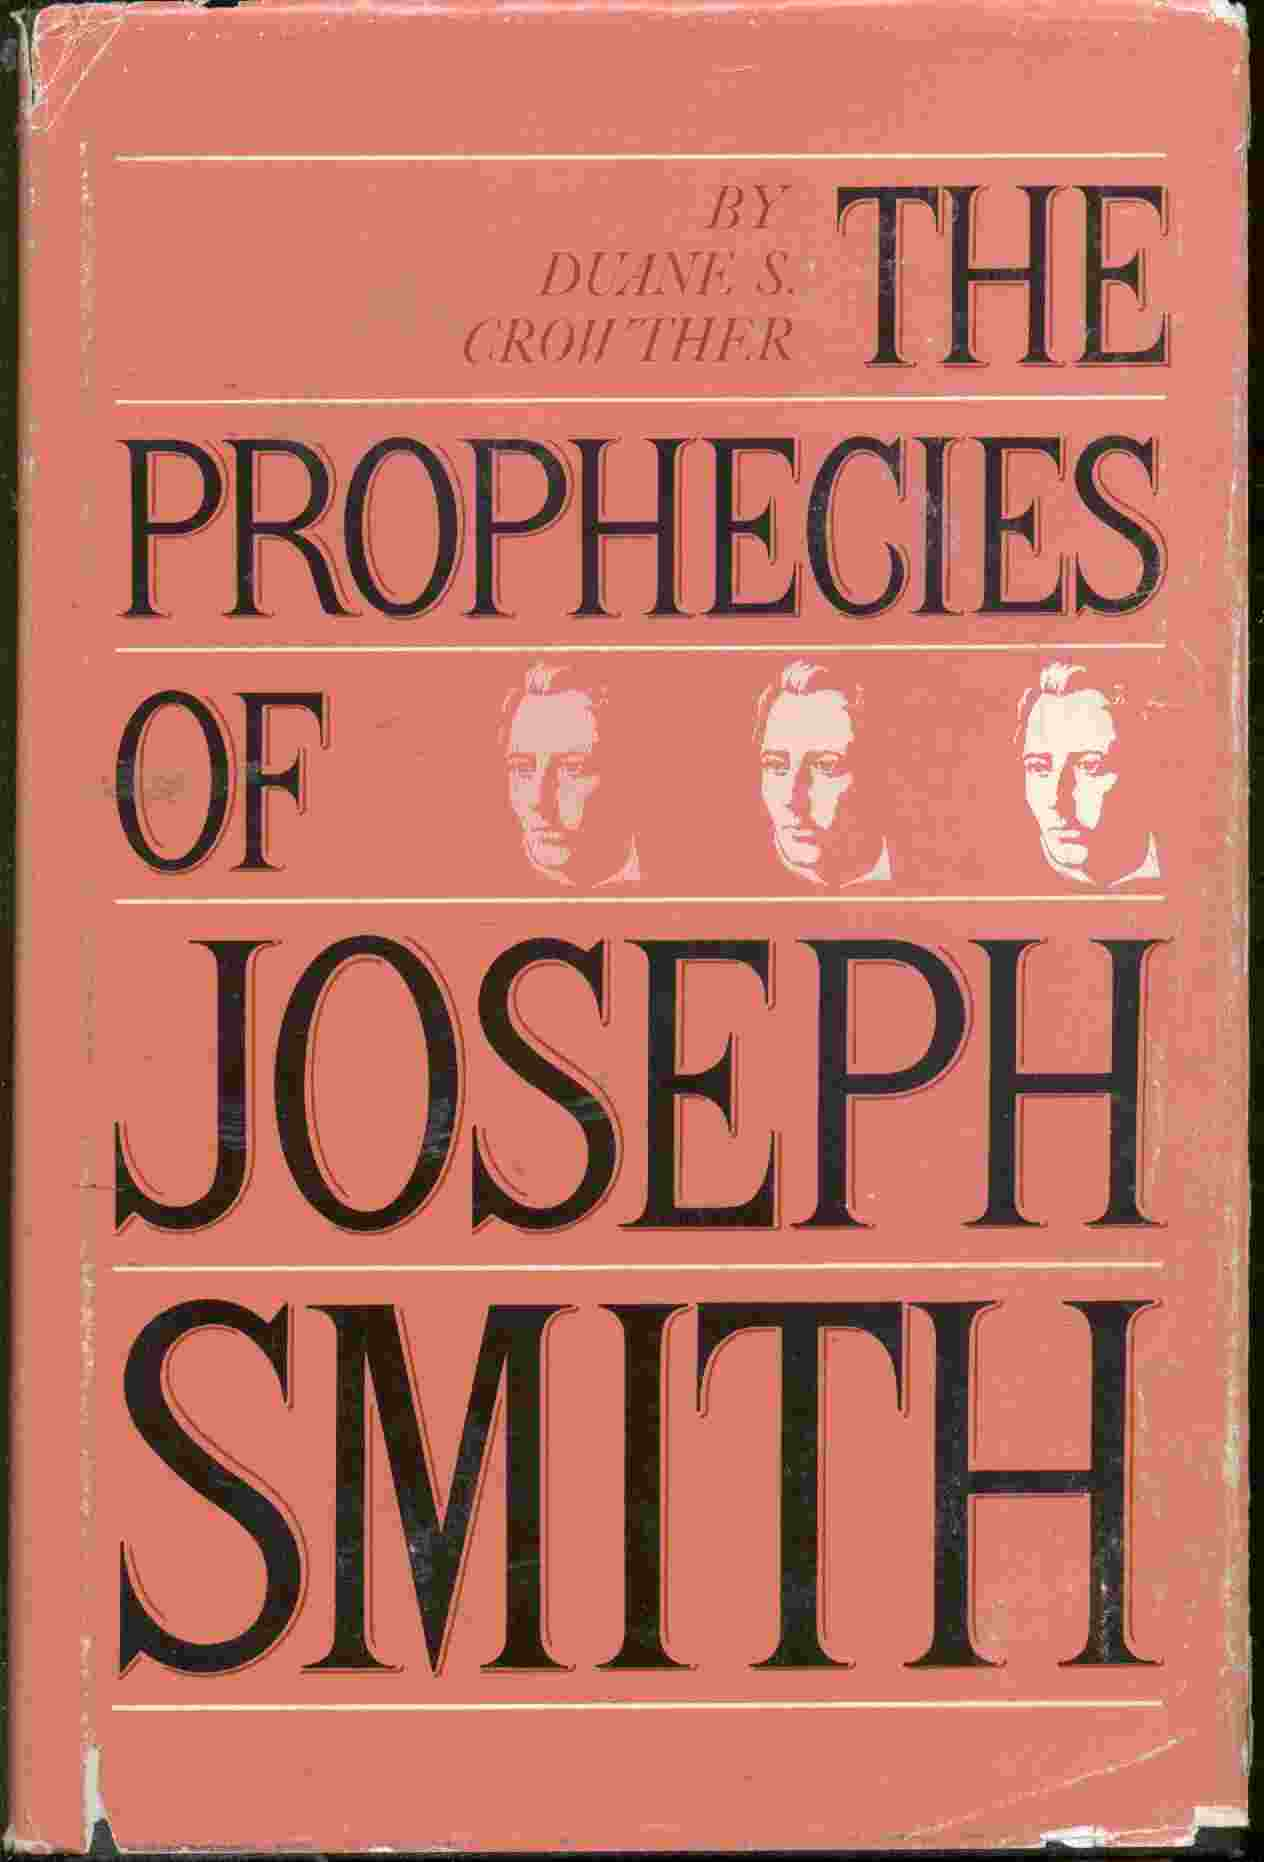 The Prophecies of Joseph Smith, Crowther, Duane S.